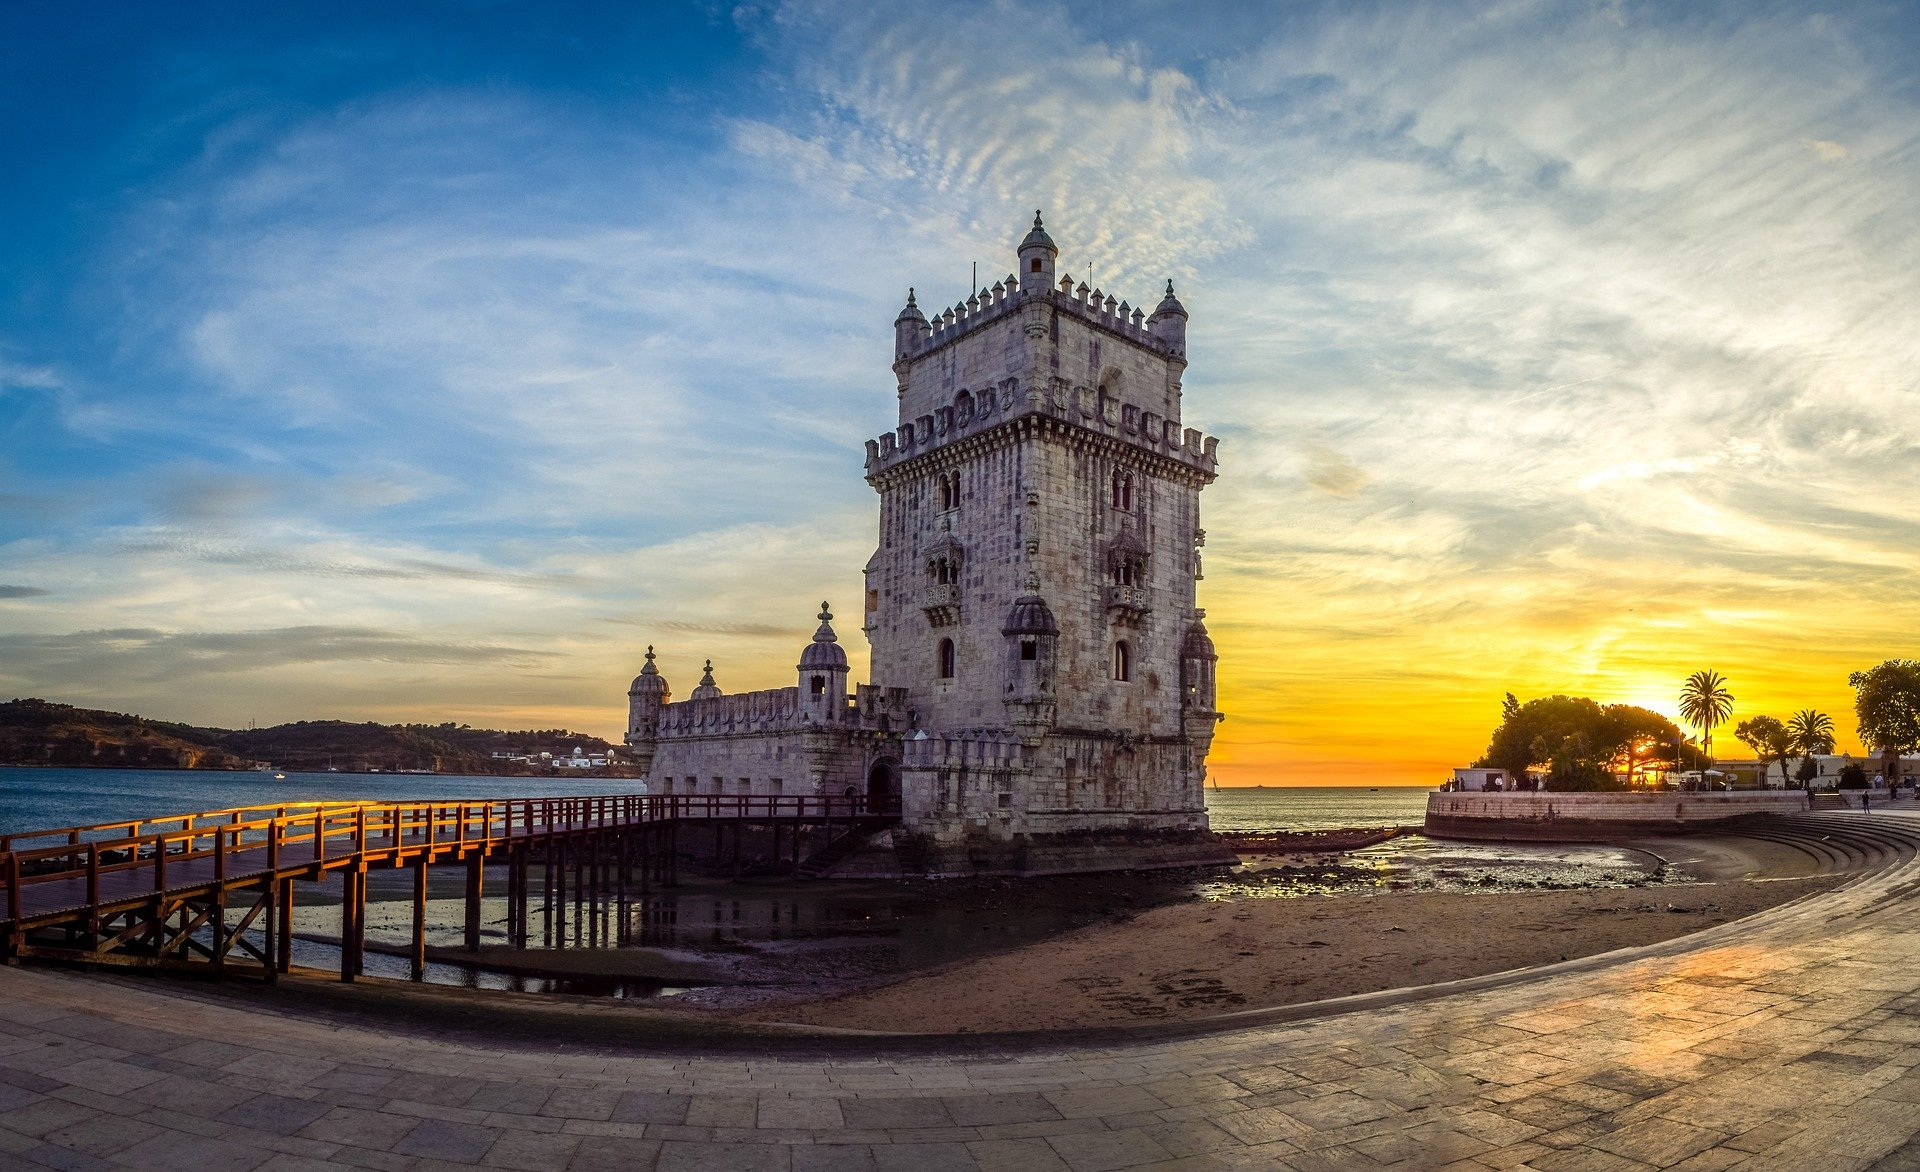 Main image of article: From Porto to Lisbon…